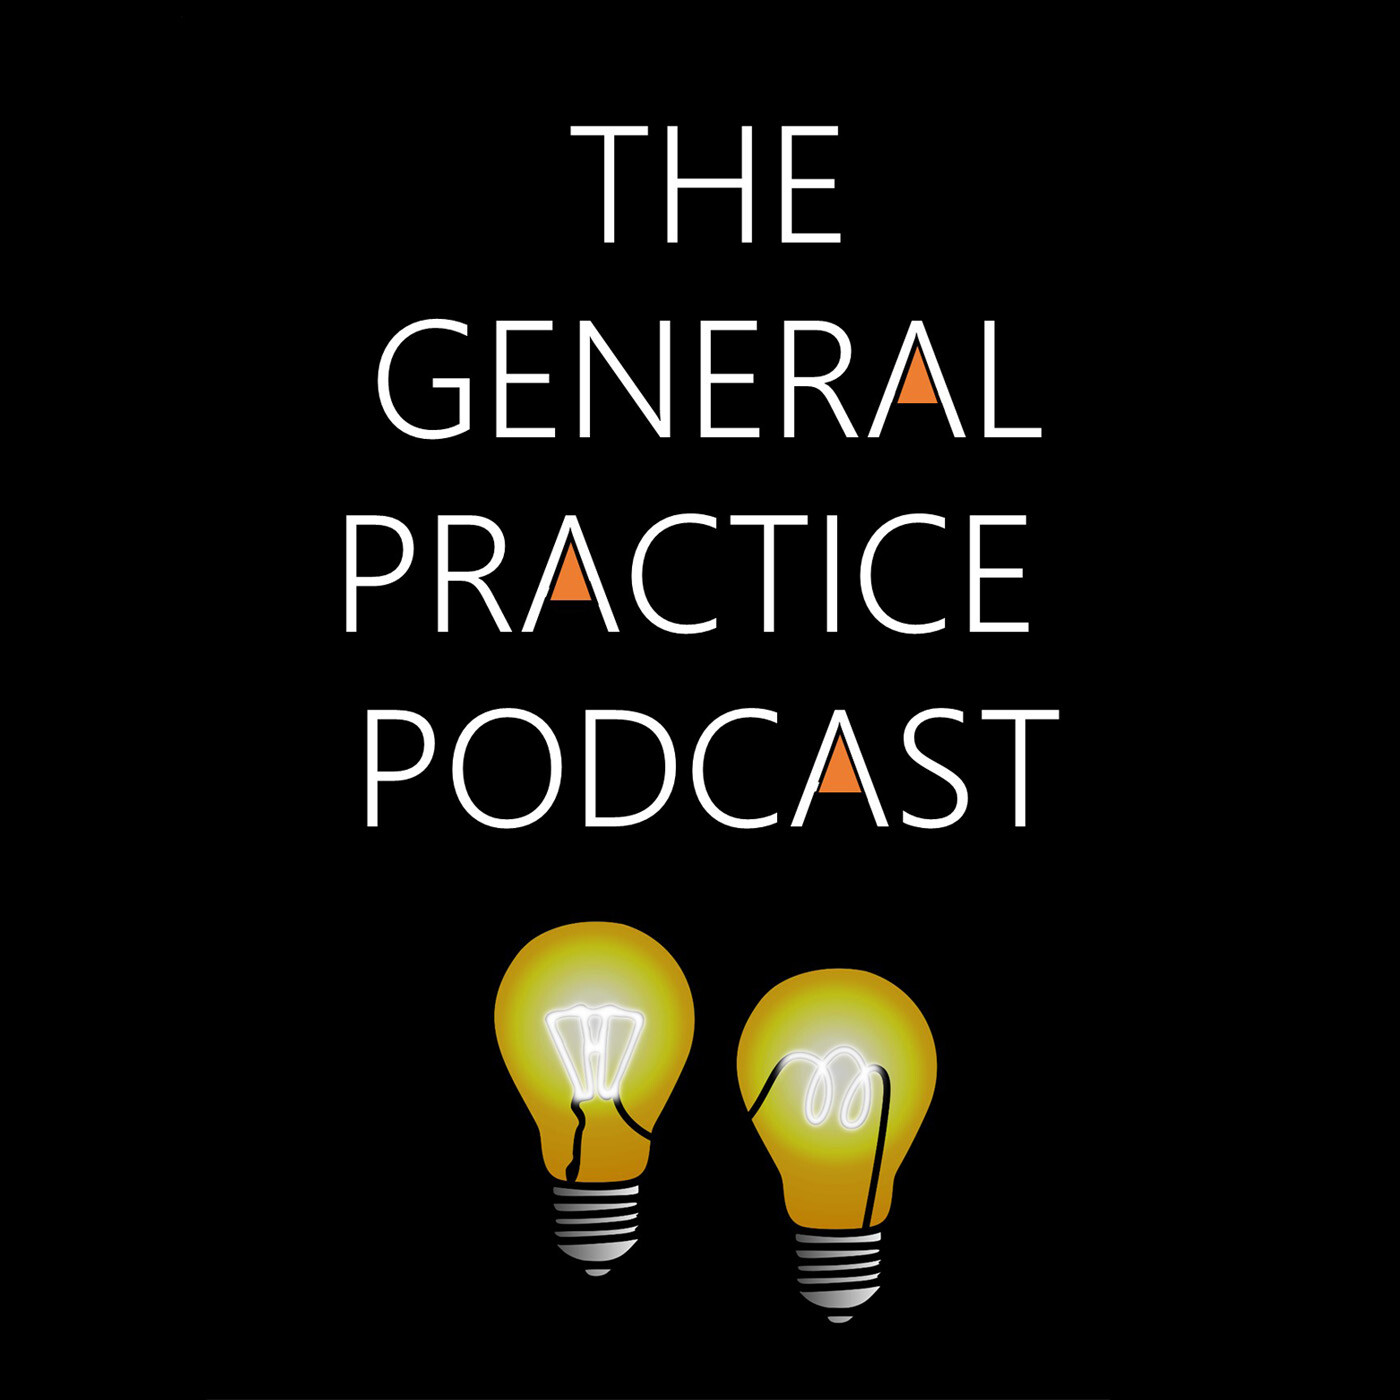 Podcast - Practice Index - Morale in general practice